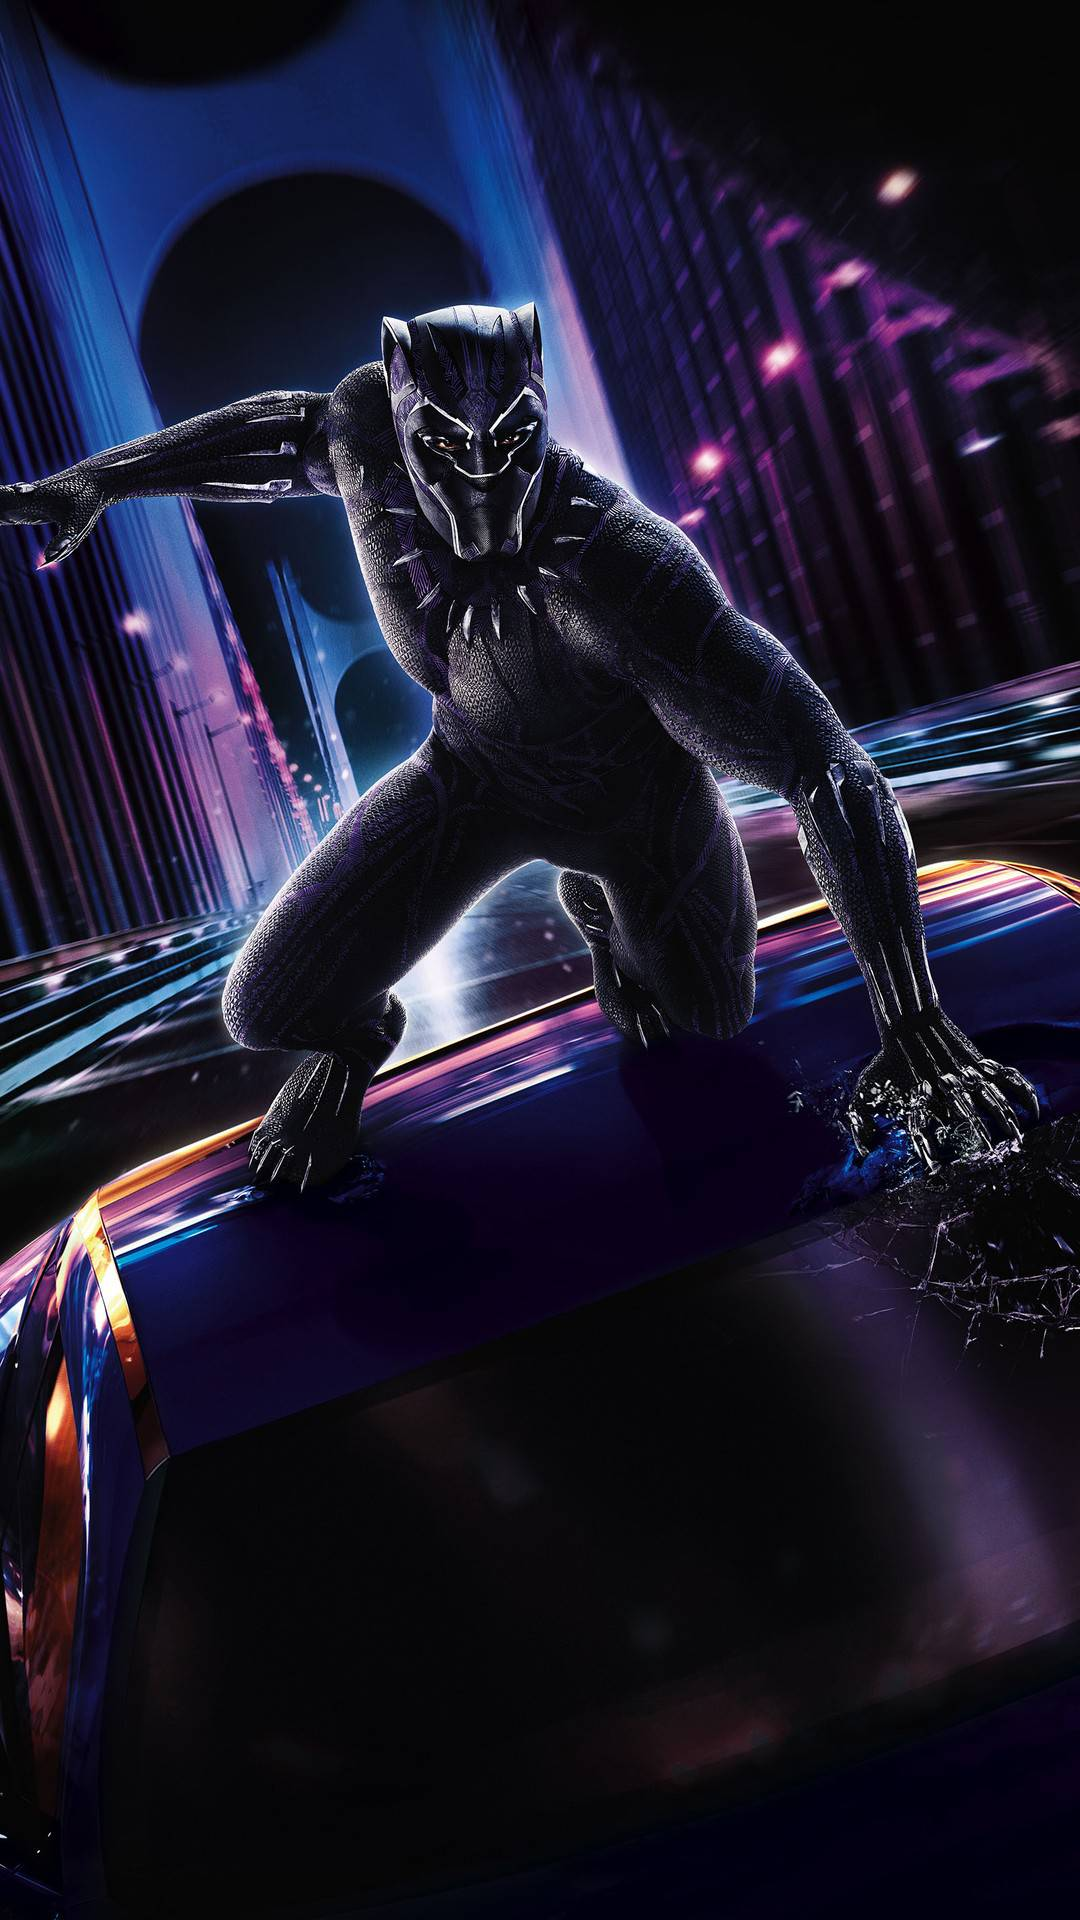 Marvel Black Panther Action iPhone Wallpaper